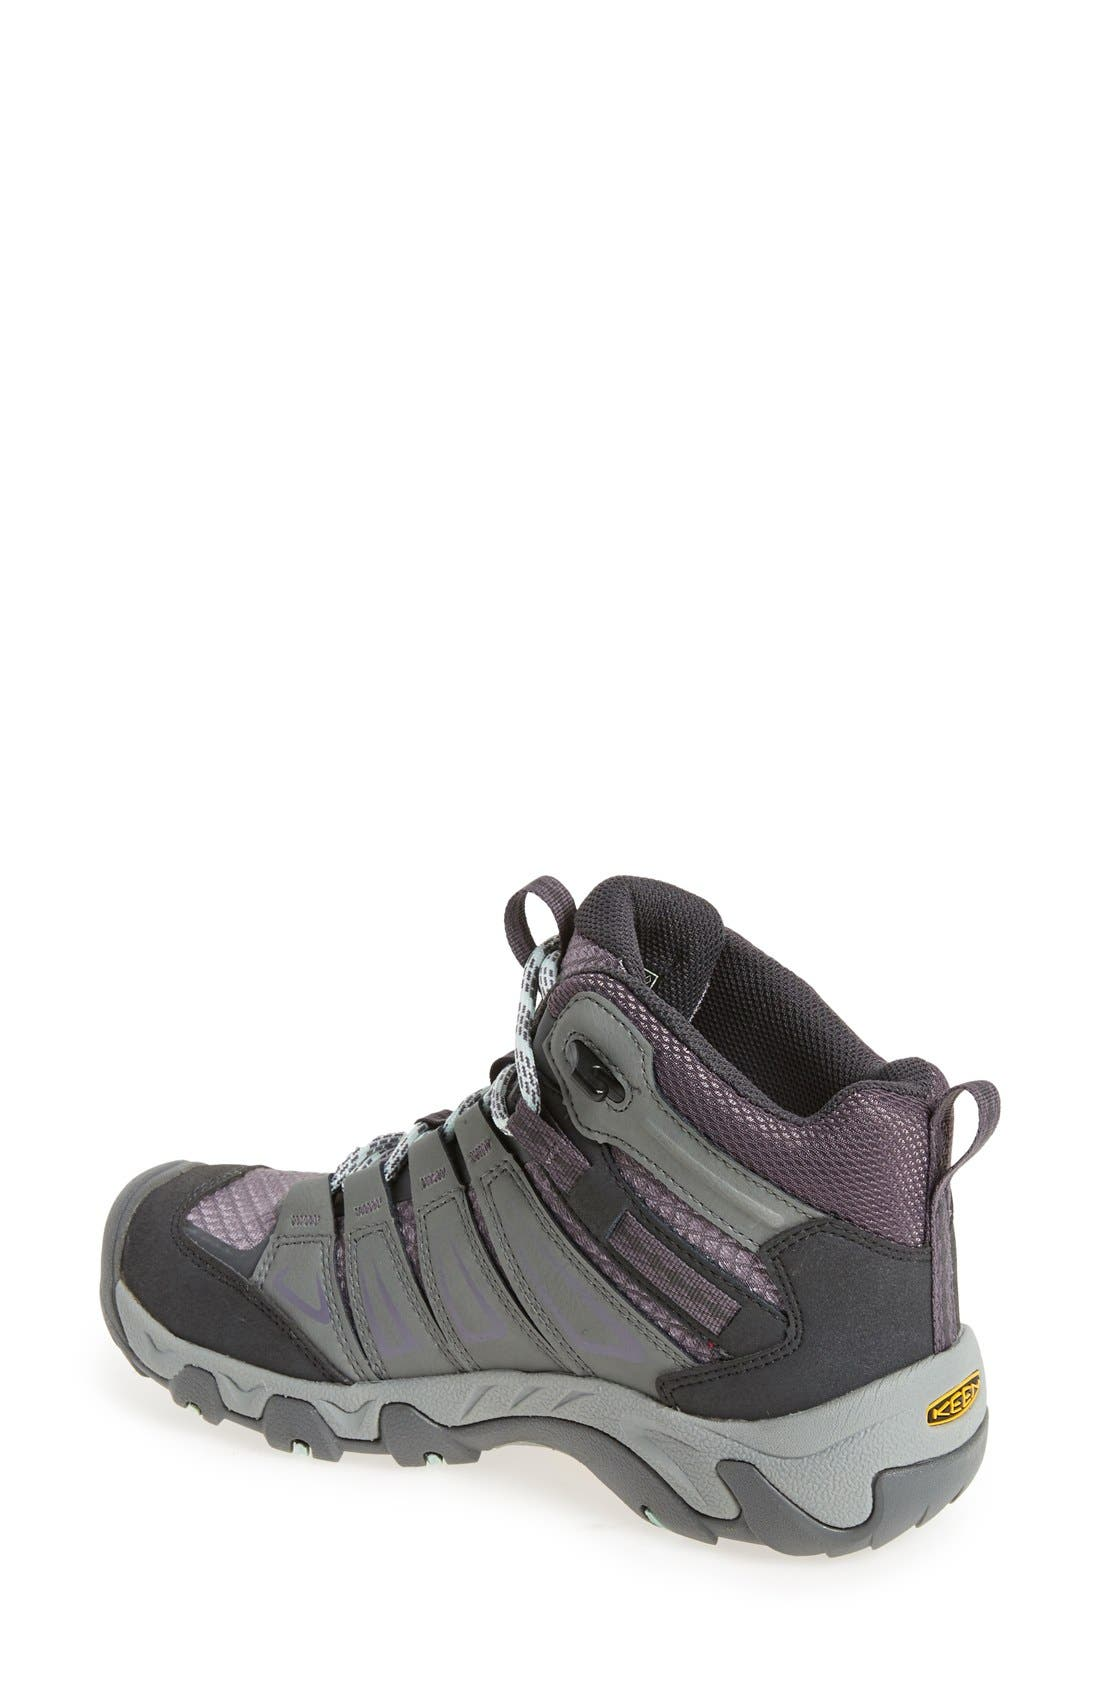 Alternate Image 2  - Keen 'Oakridge' Waterproof Hiking Boot (Women)